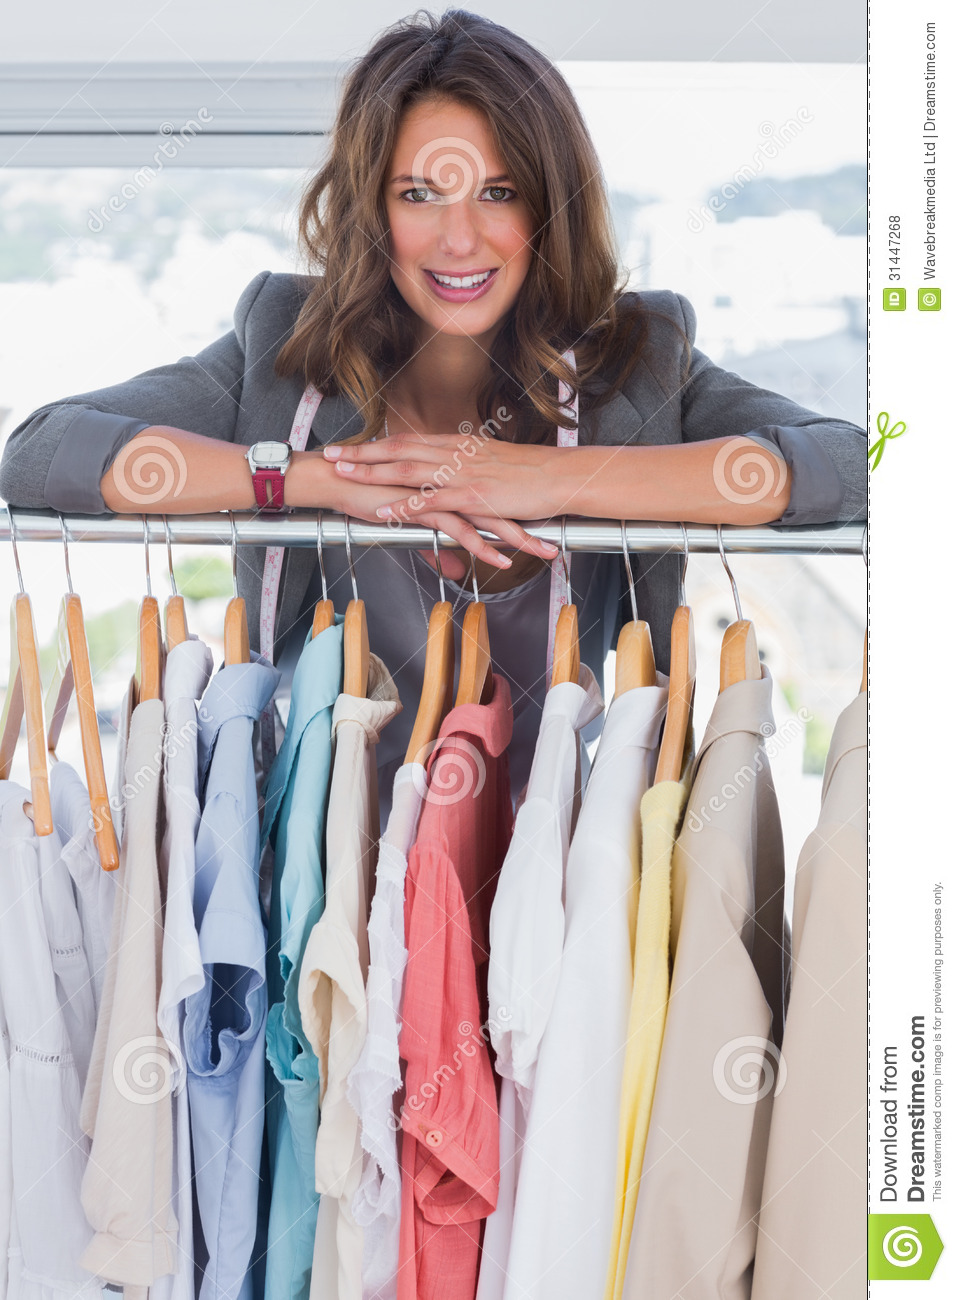 smiling fashion designer leaning on clothes stock photo